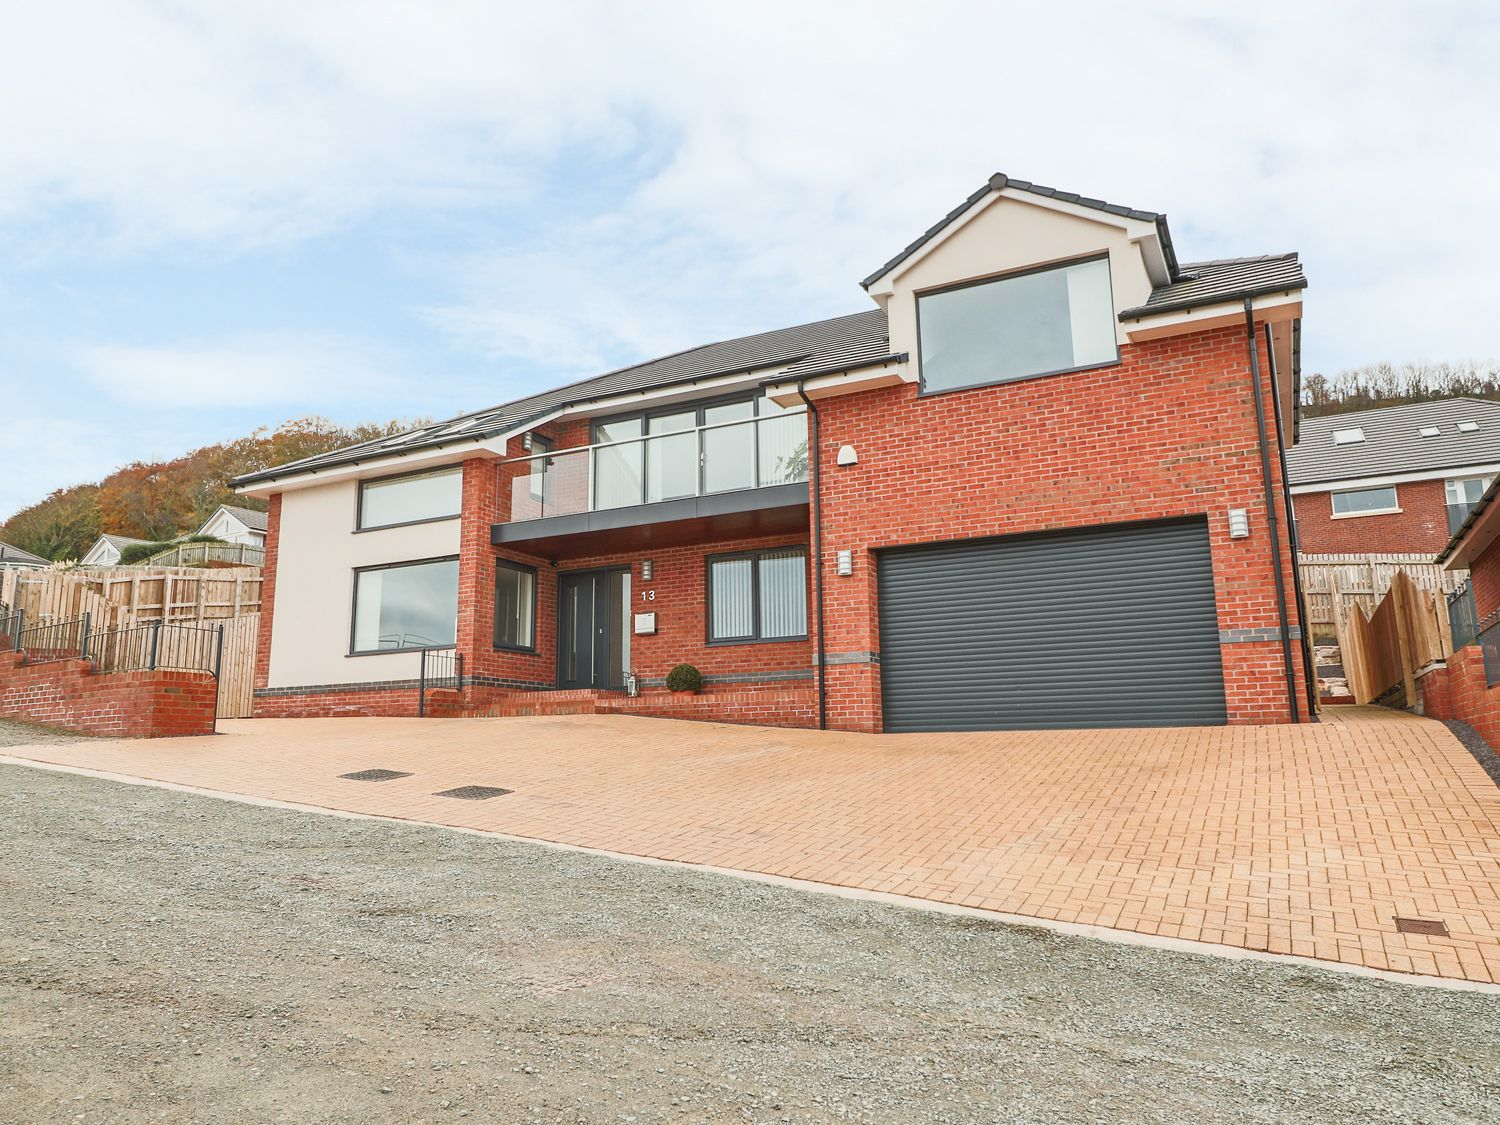 13 Parc Llindir - North Wales - 970030 - photo 1